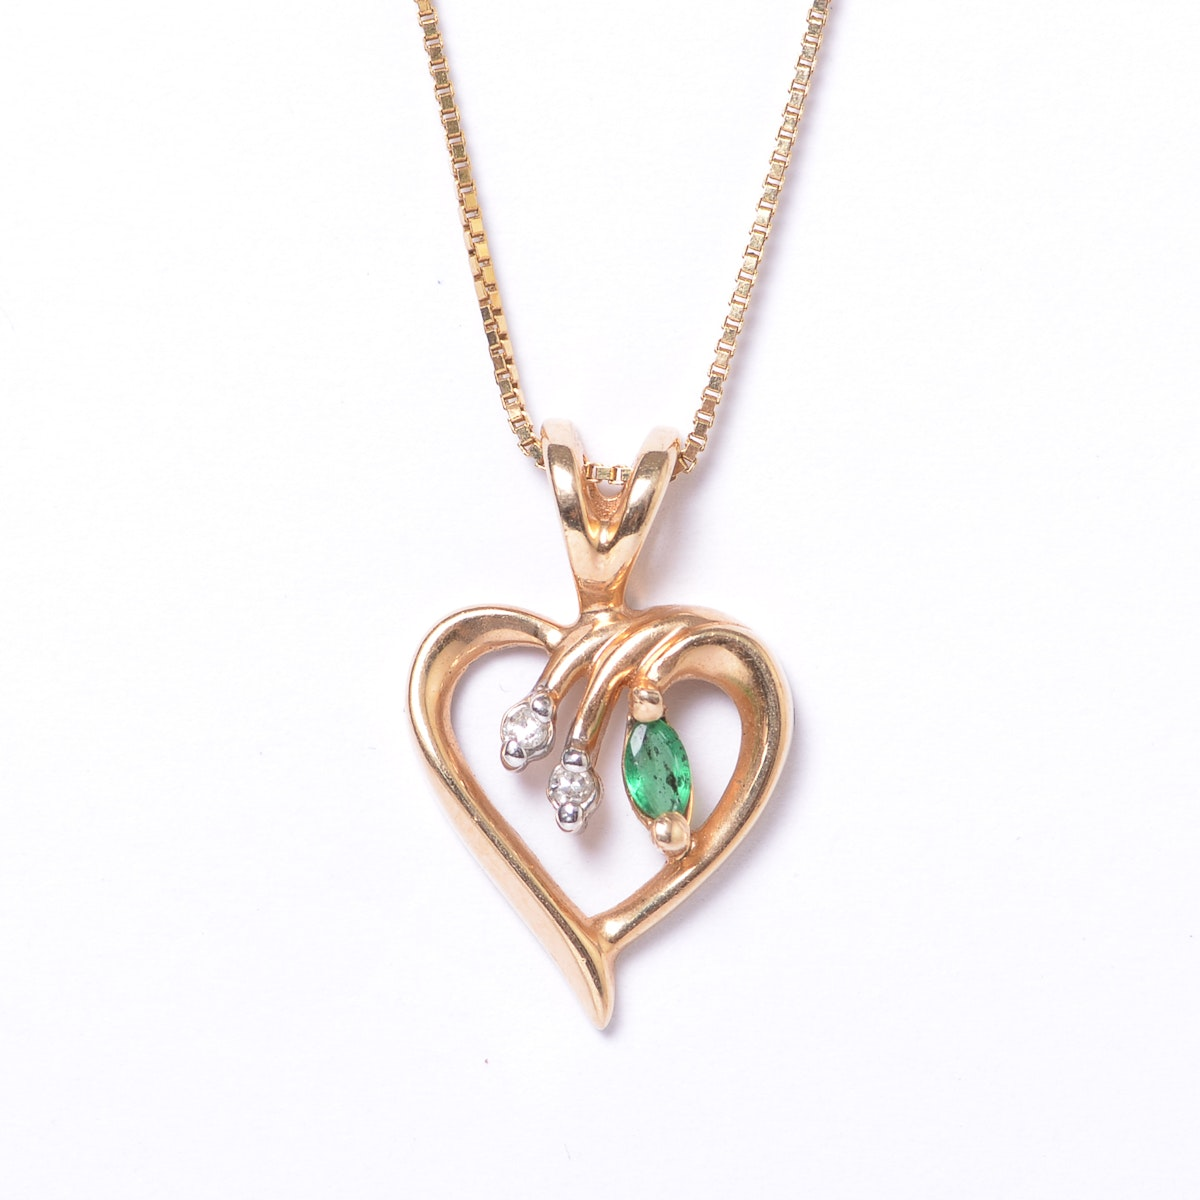 14K Yellow Gold, Emerald, and Diamond Open Heart Pendant Necklace